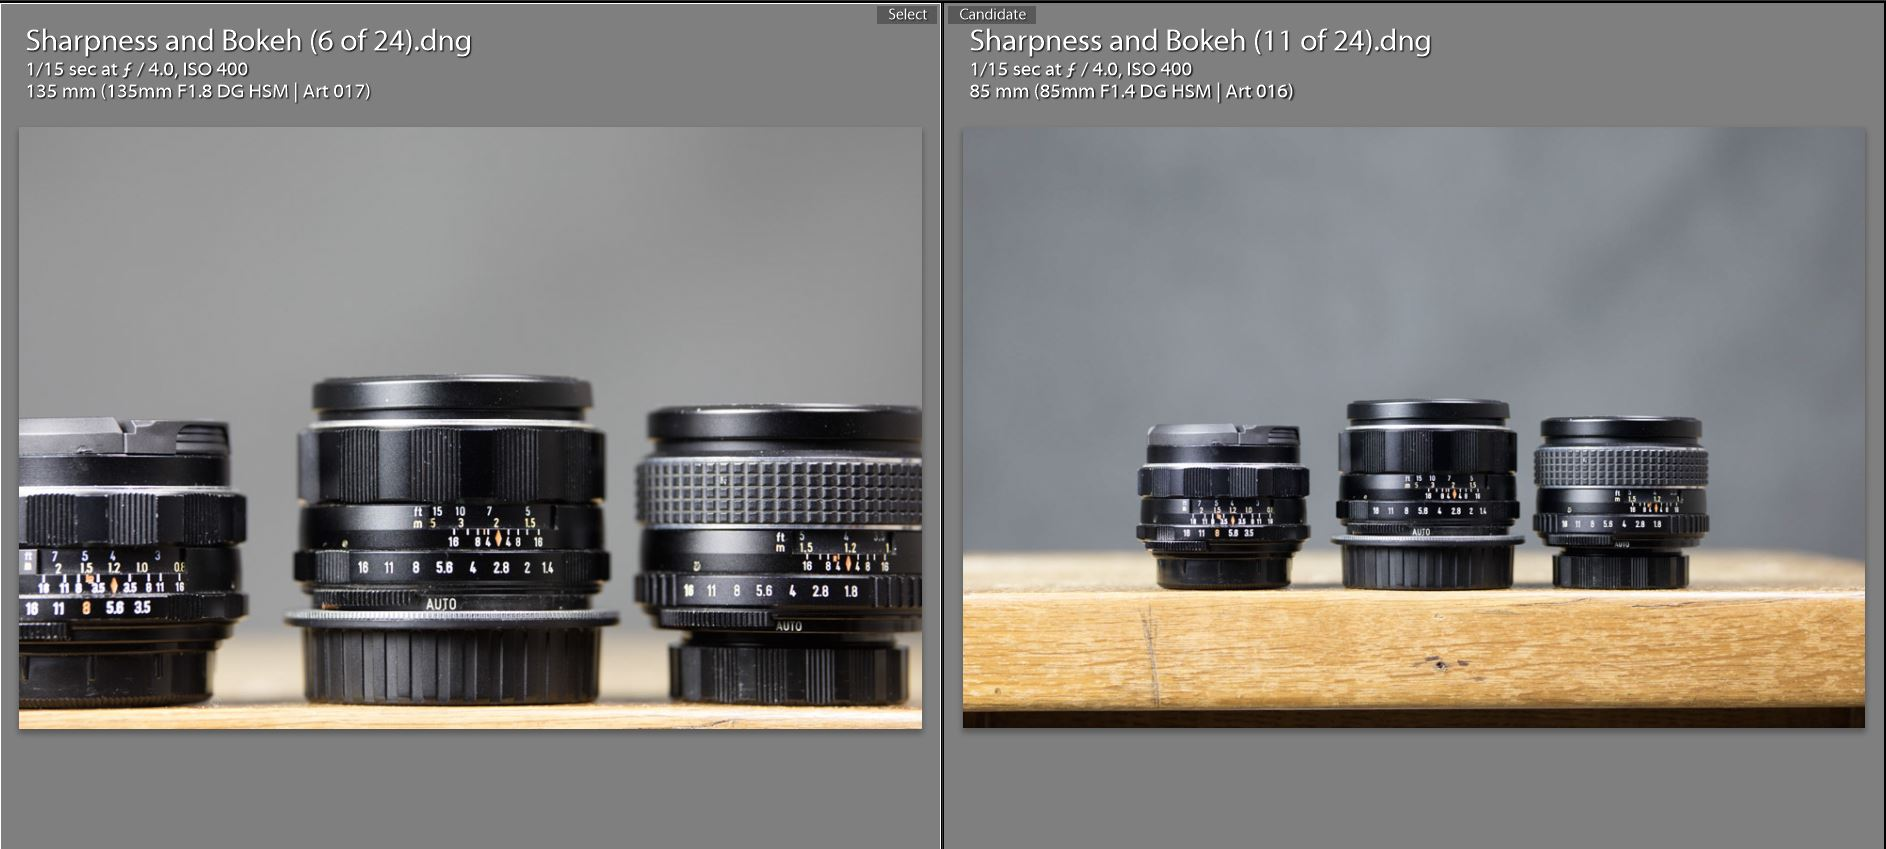 85 v 135 Magnification Comparison